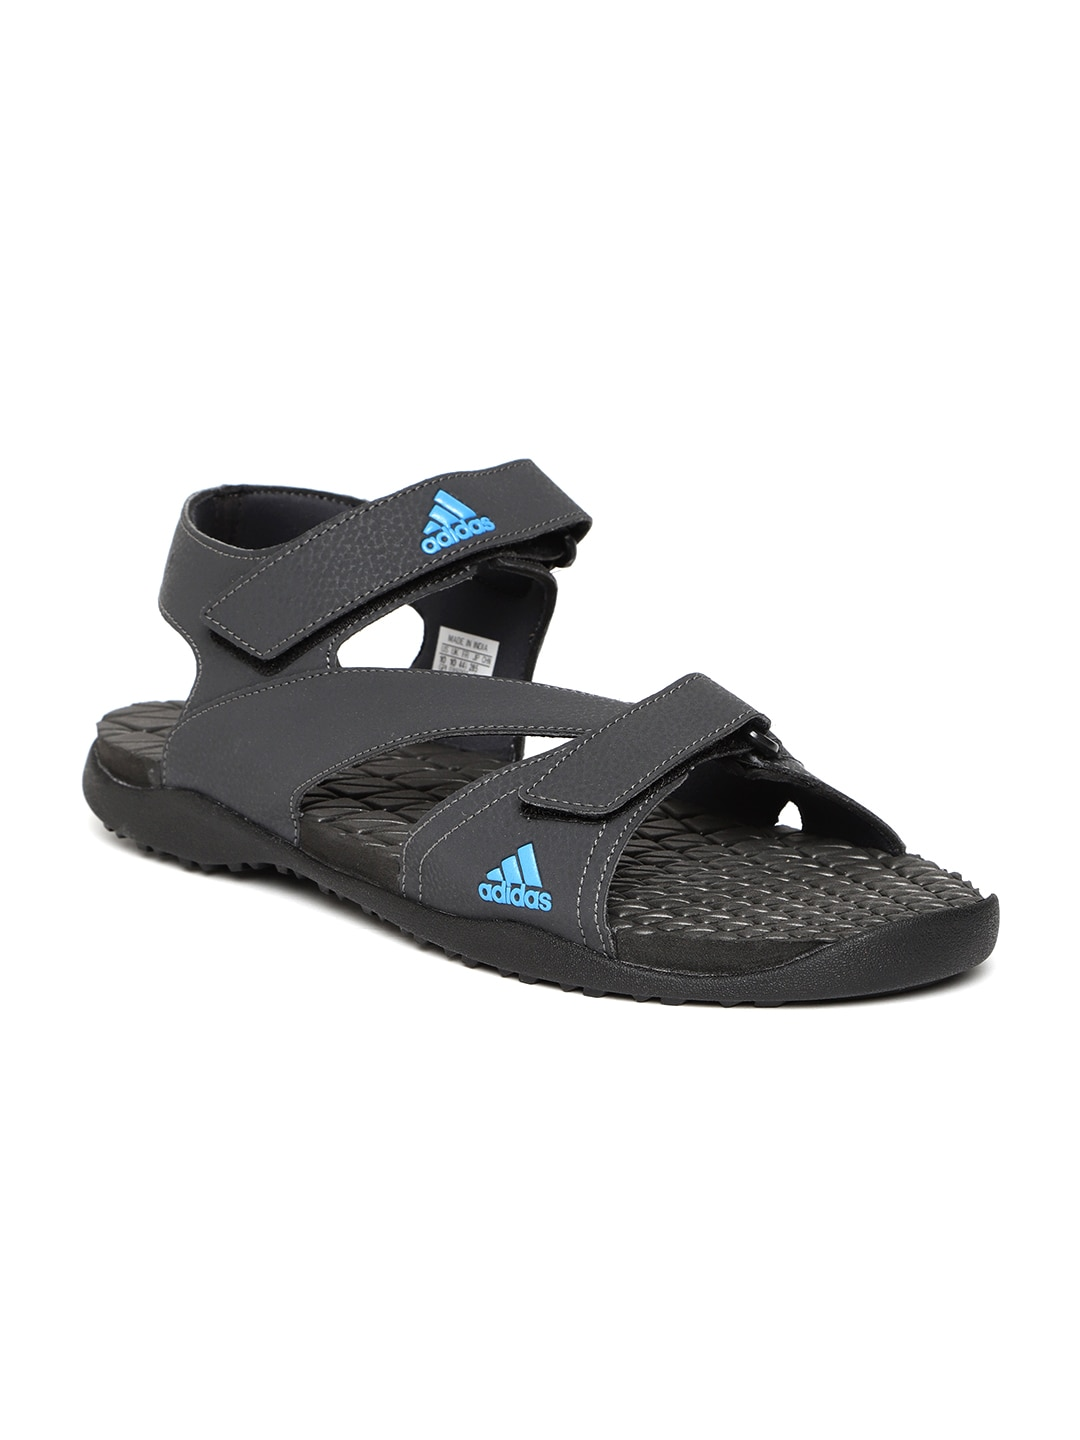 0e8088a4f Sandal Adidas Men Sports Sandals - Buy Sandal Adidas Men Sports Sandals  online in India